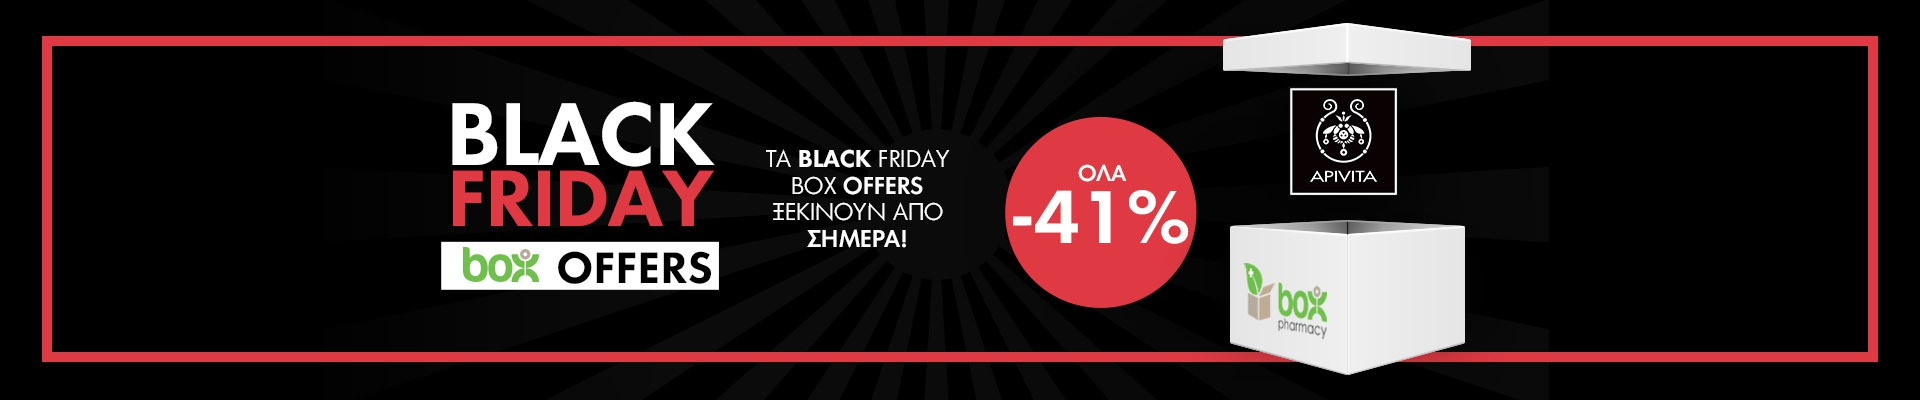 BLACK FRIDAY Apivita -41%